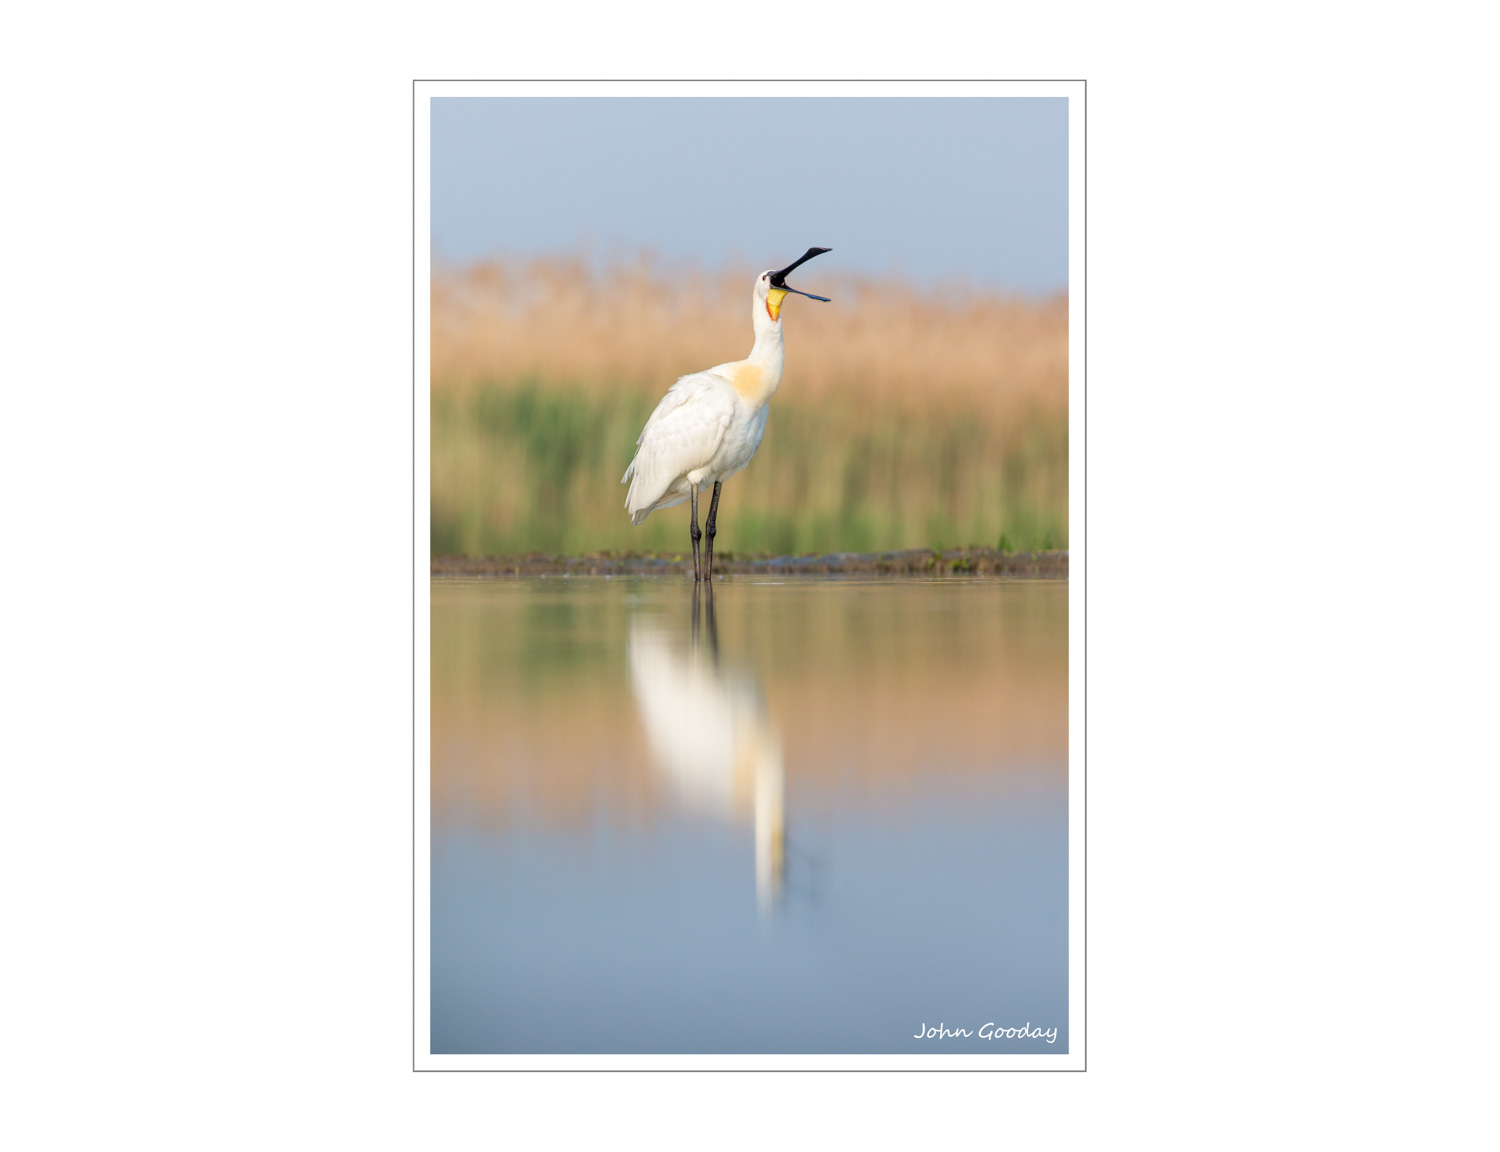 (Image: Spoonbill calling. Canon EOS 1DX, EF300mm f/2.8L IS, 1/1600 sec @ f/5, ISO 640, tripod, hide).